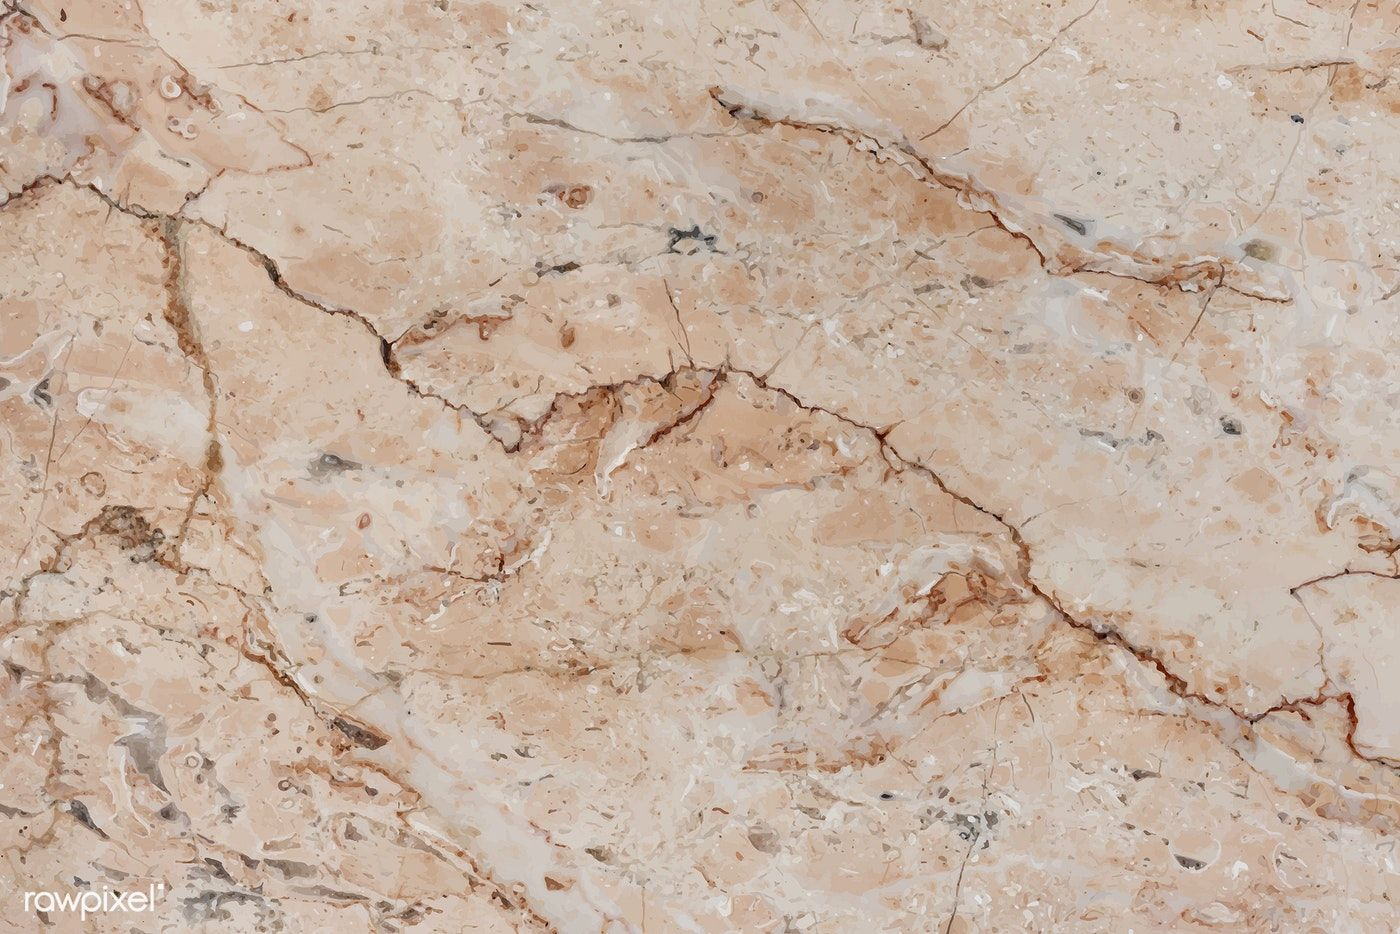 Brown Marble Texture Background Design Free Image By Rawpixel Com Background Design Textured Background Marble Texture